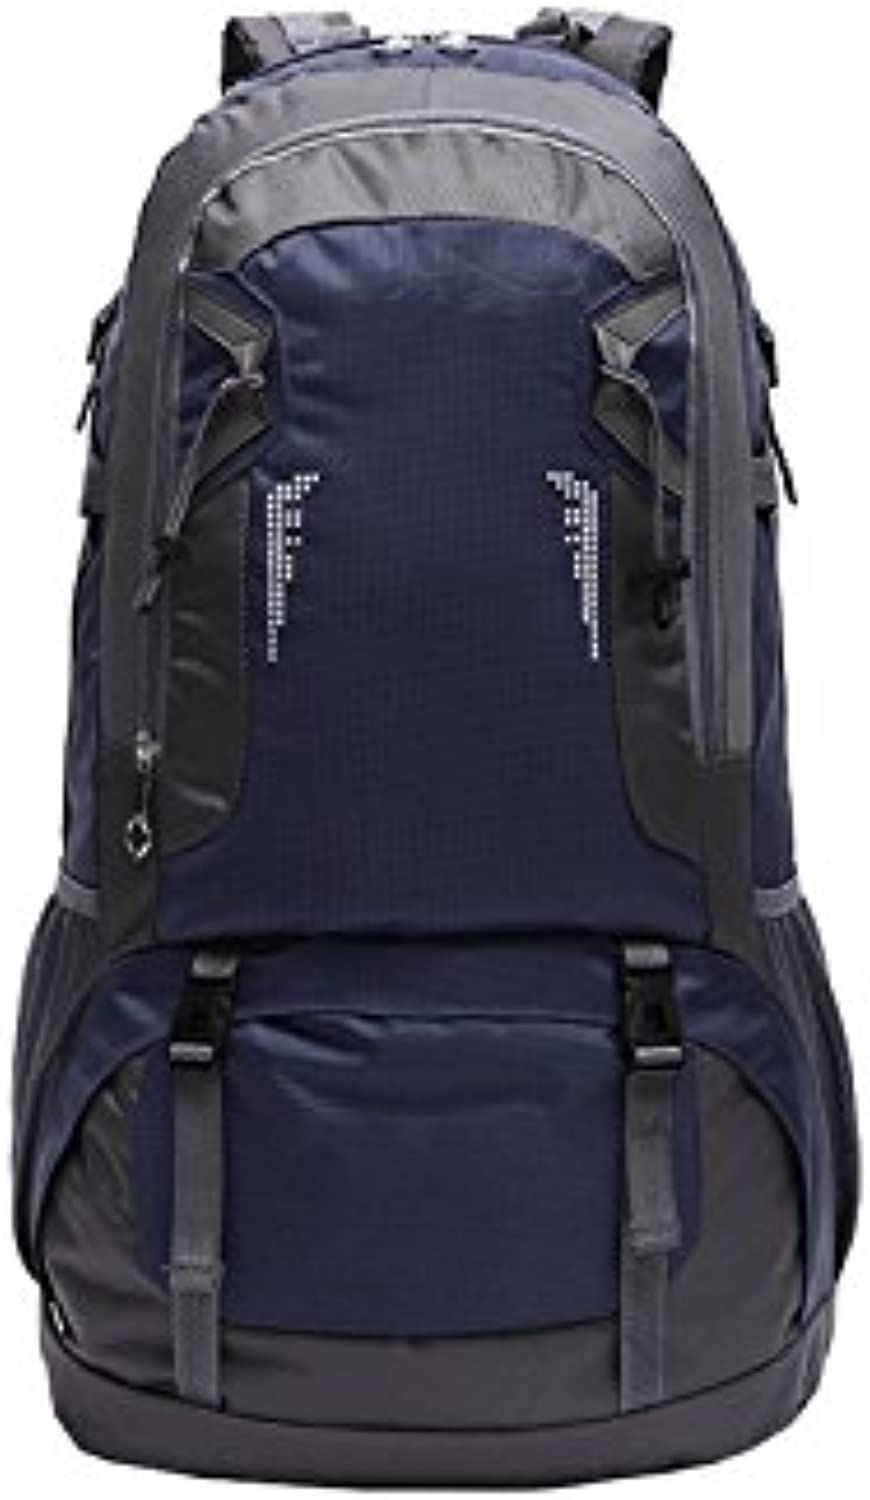 Hiking Lightweight Hiking Rucksack Breathable Bike Bags Great Small Backpacks(Navy bluee) for Outdoor Traveling